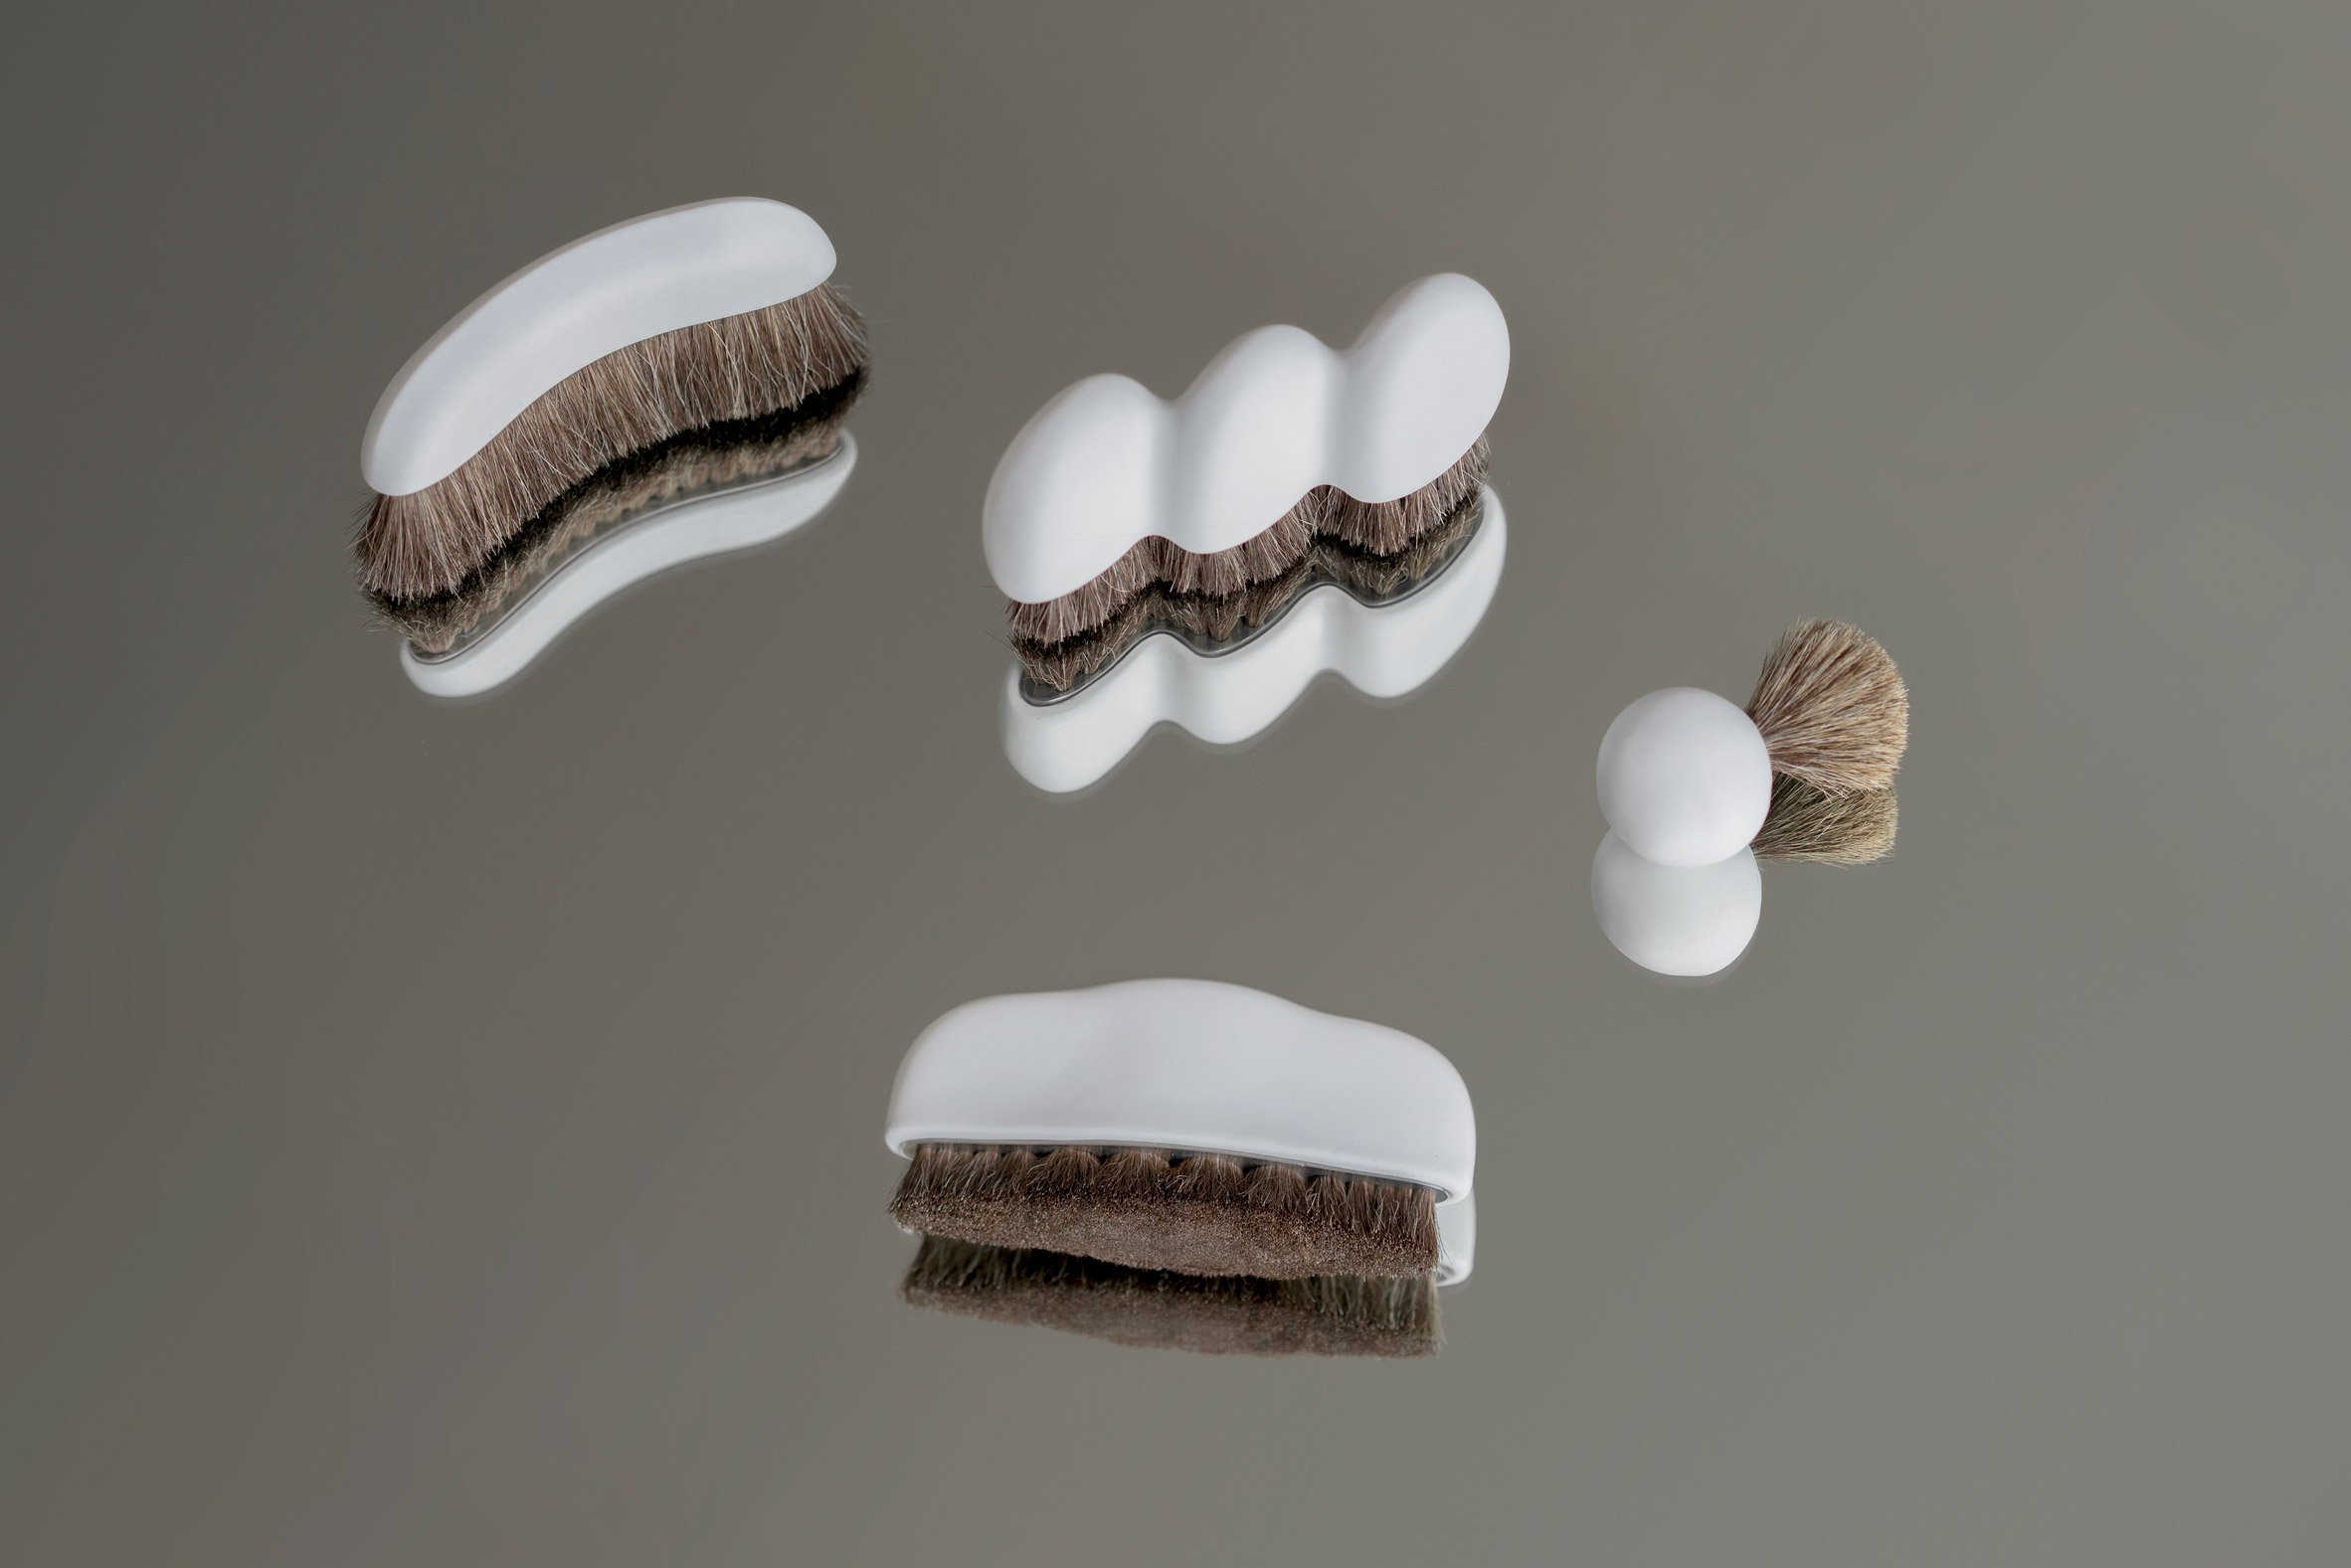 Brushes from Landscape Tail by Oornament Studio